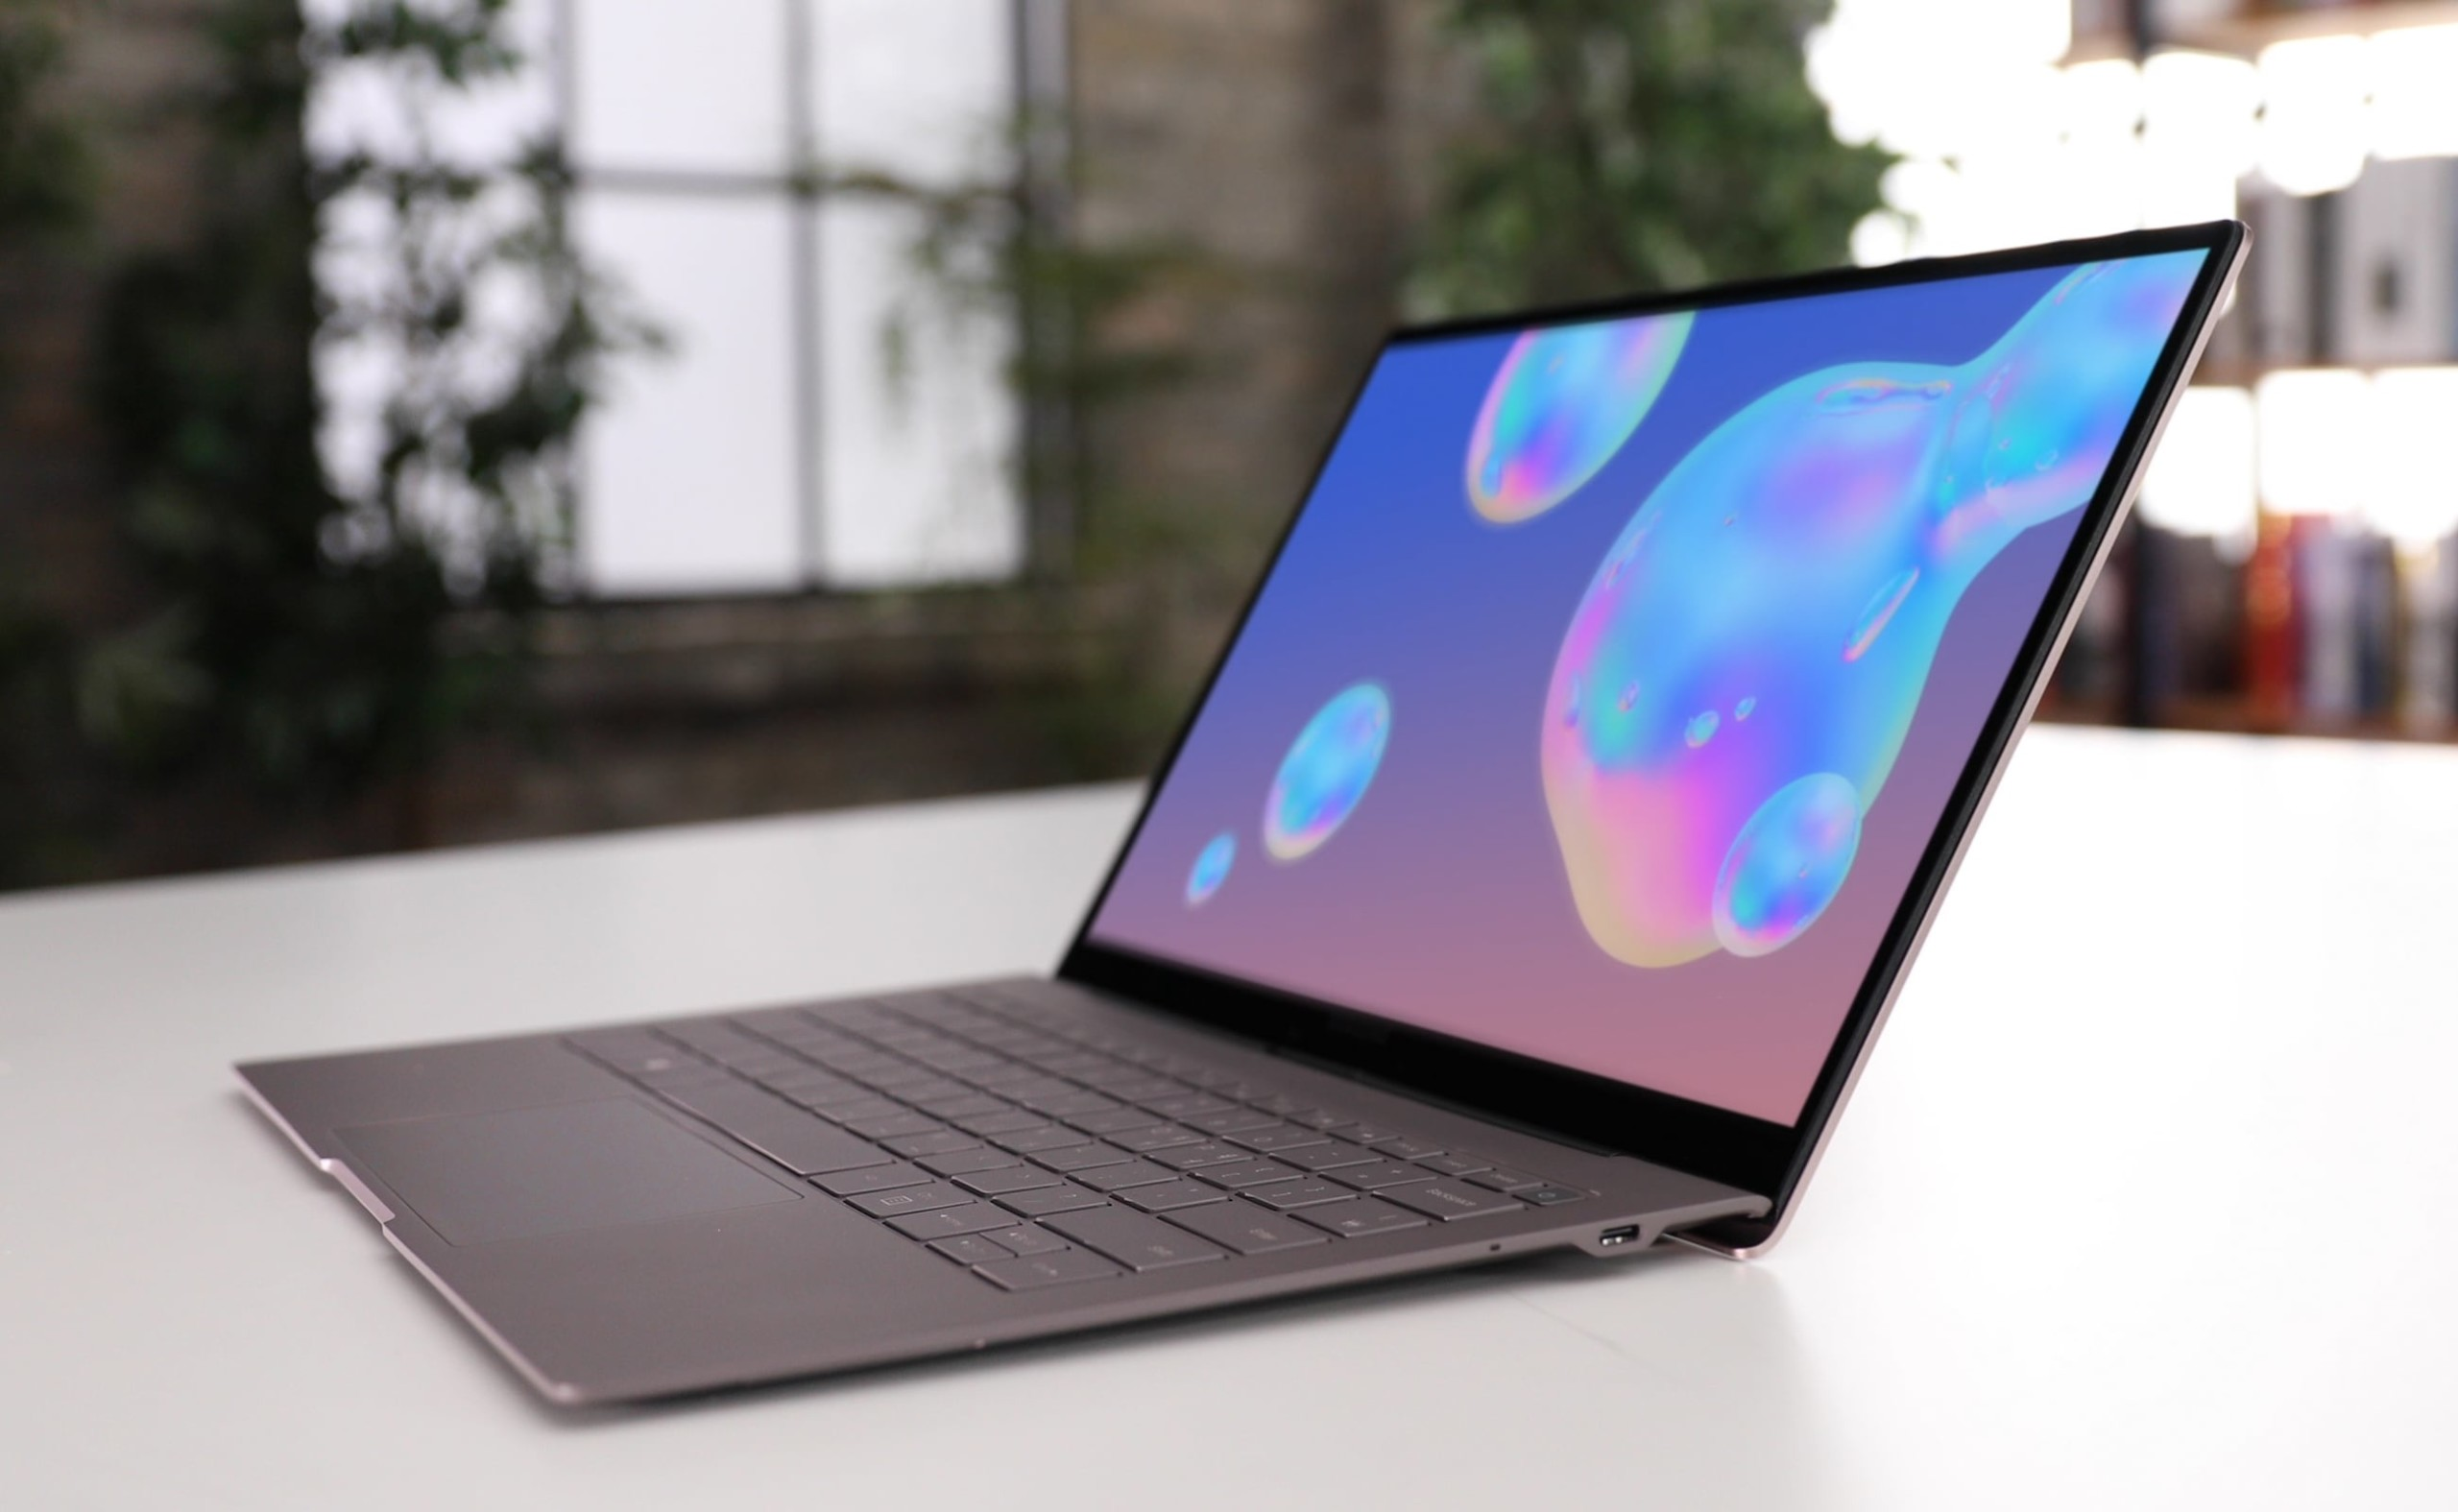 Samsung Galaxy Book S Ultralight Laptop has an LTE chipset so you can work anywhere